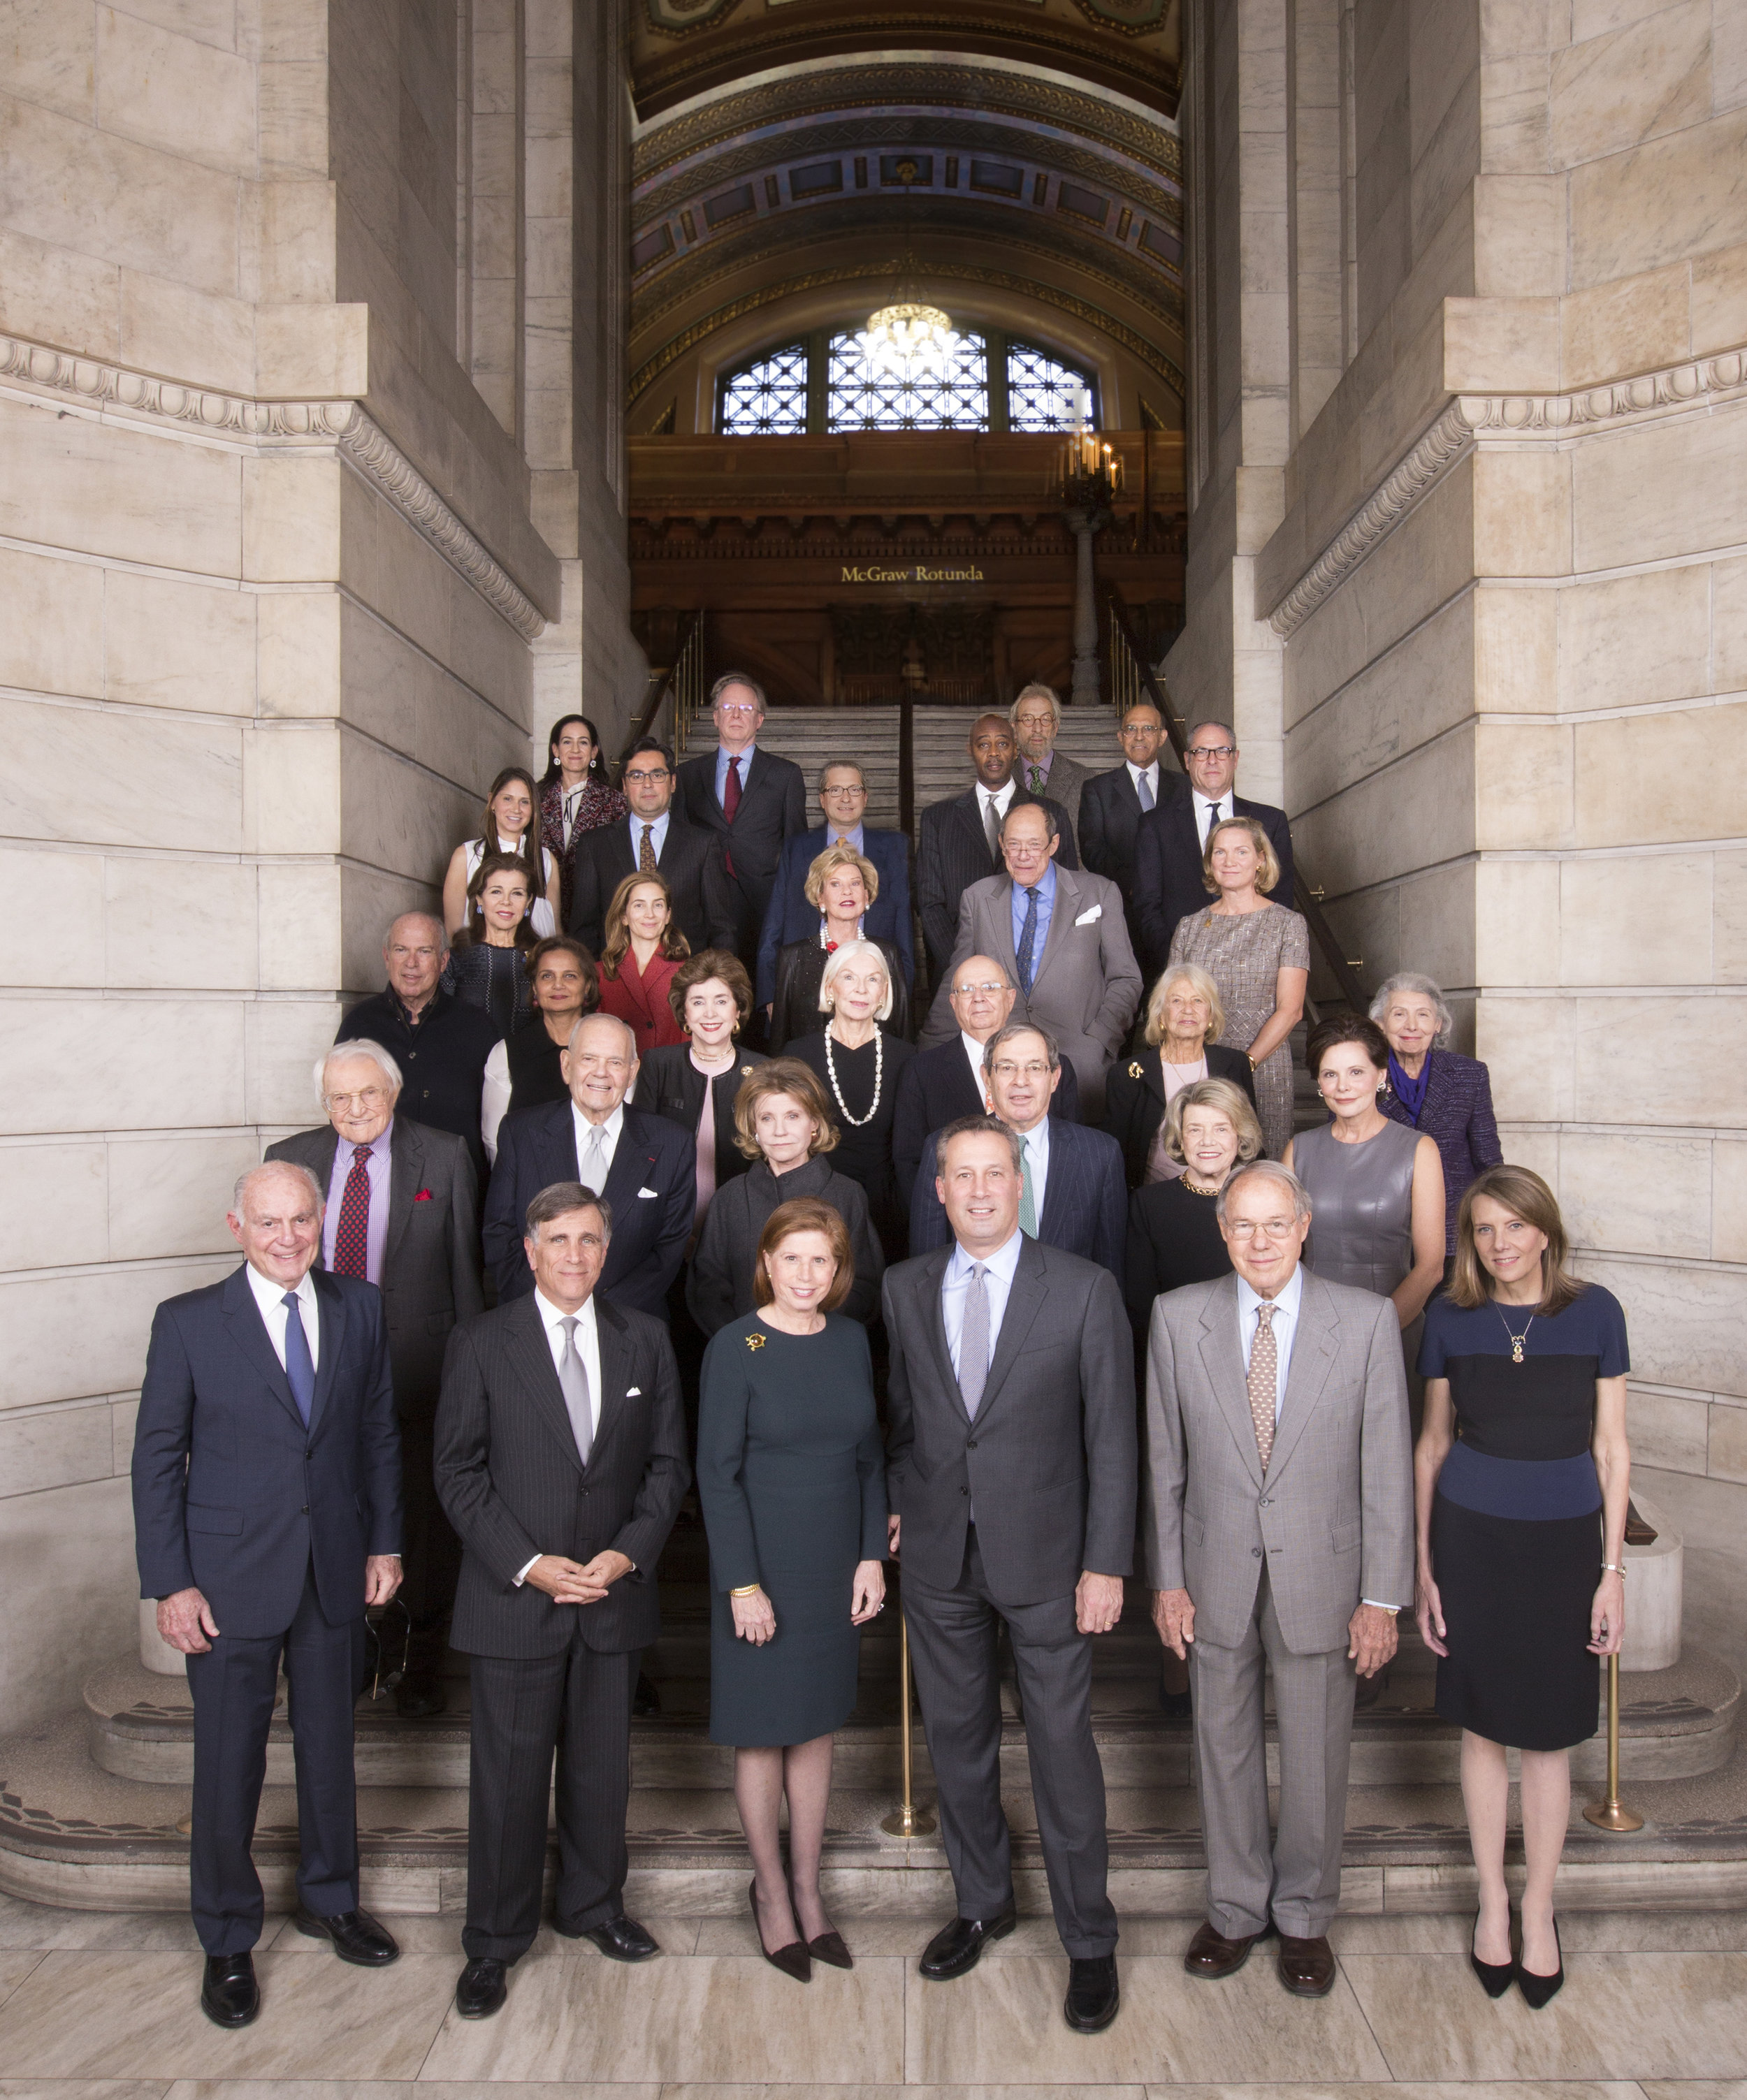 NYPL New York Public Library group portrait corporate event photography executive photos nyc